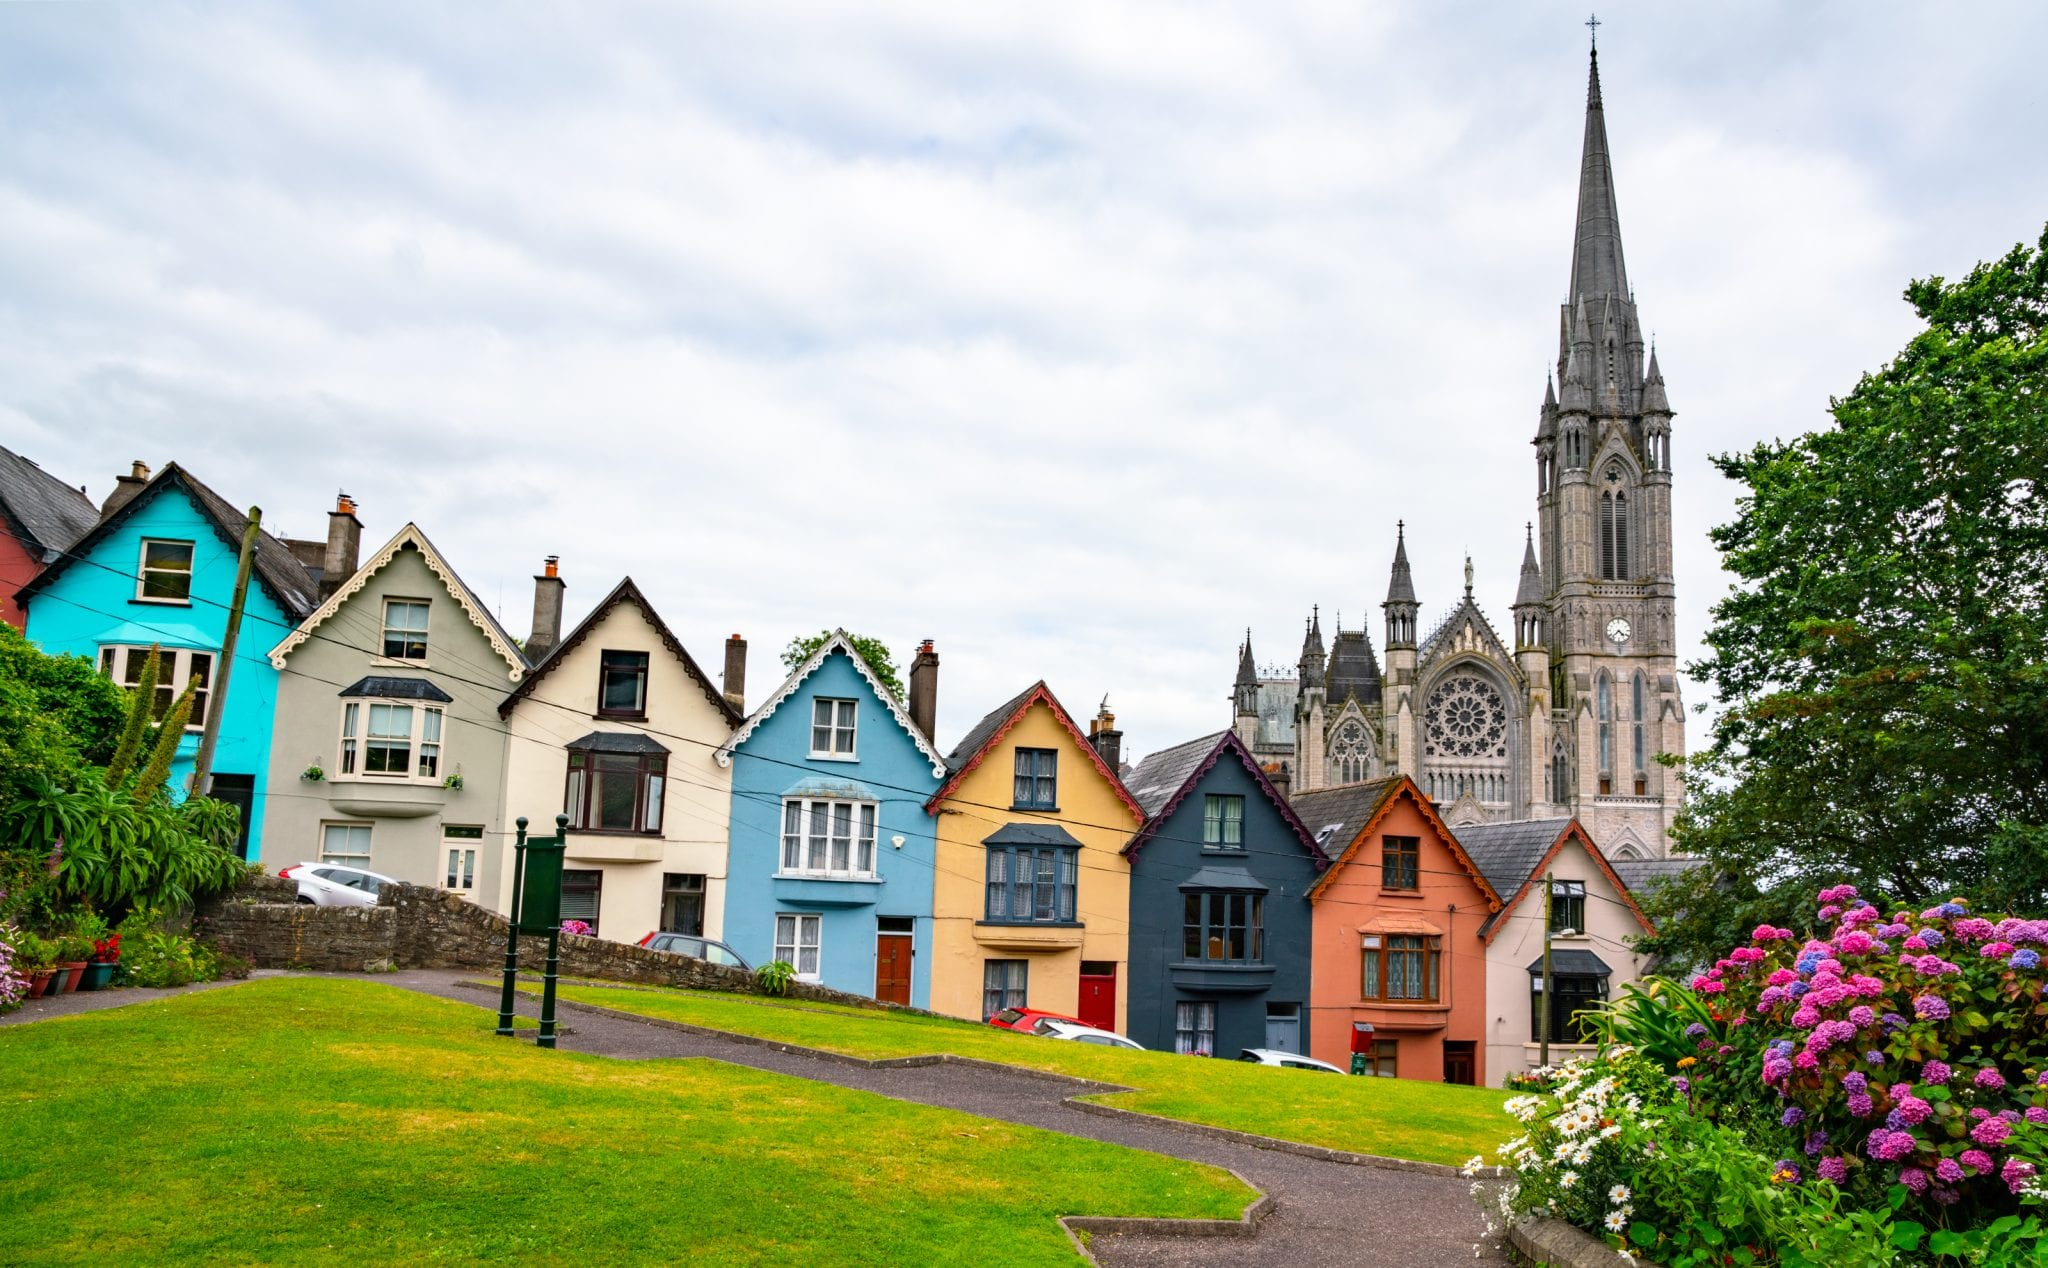 The 10 best hotels & places to stay in Cobh, Ireland - Cobh